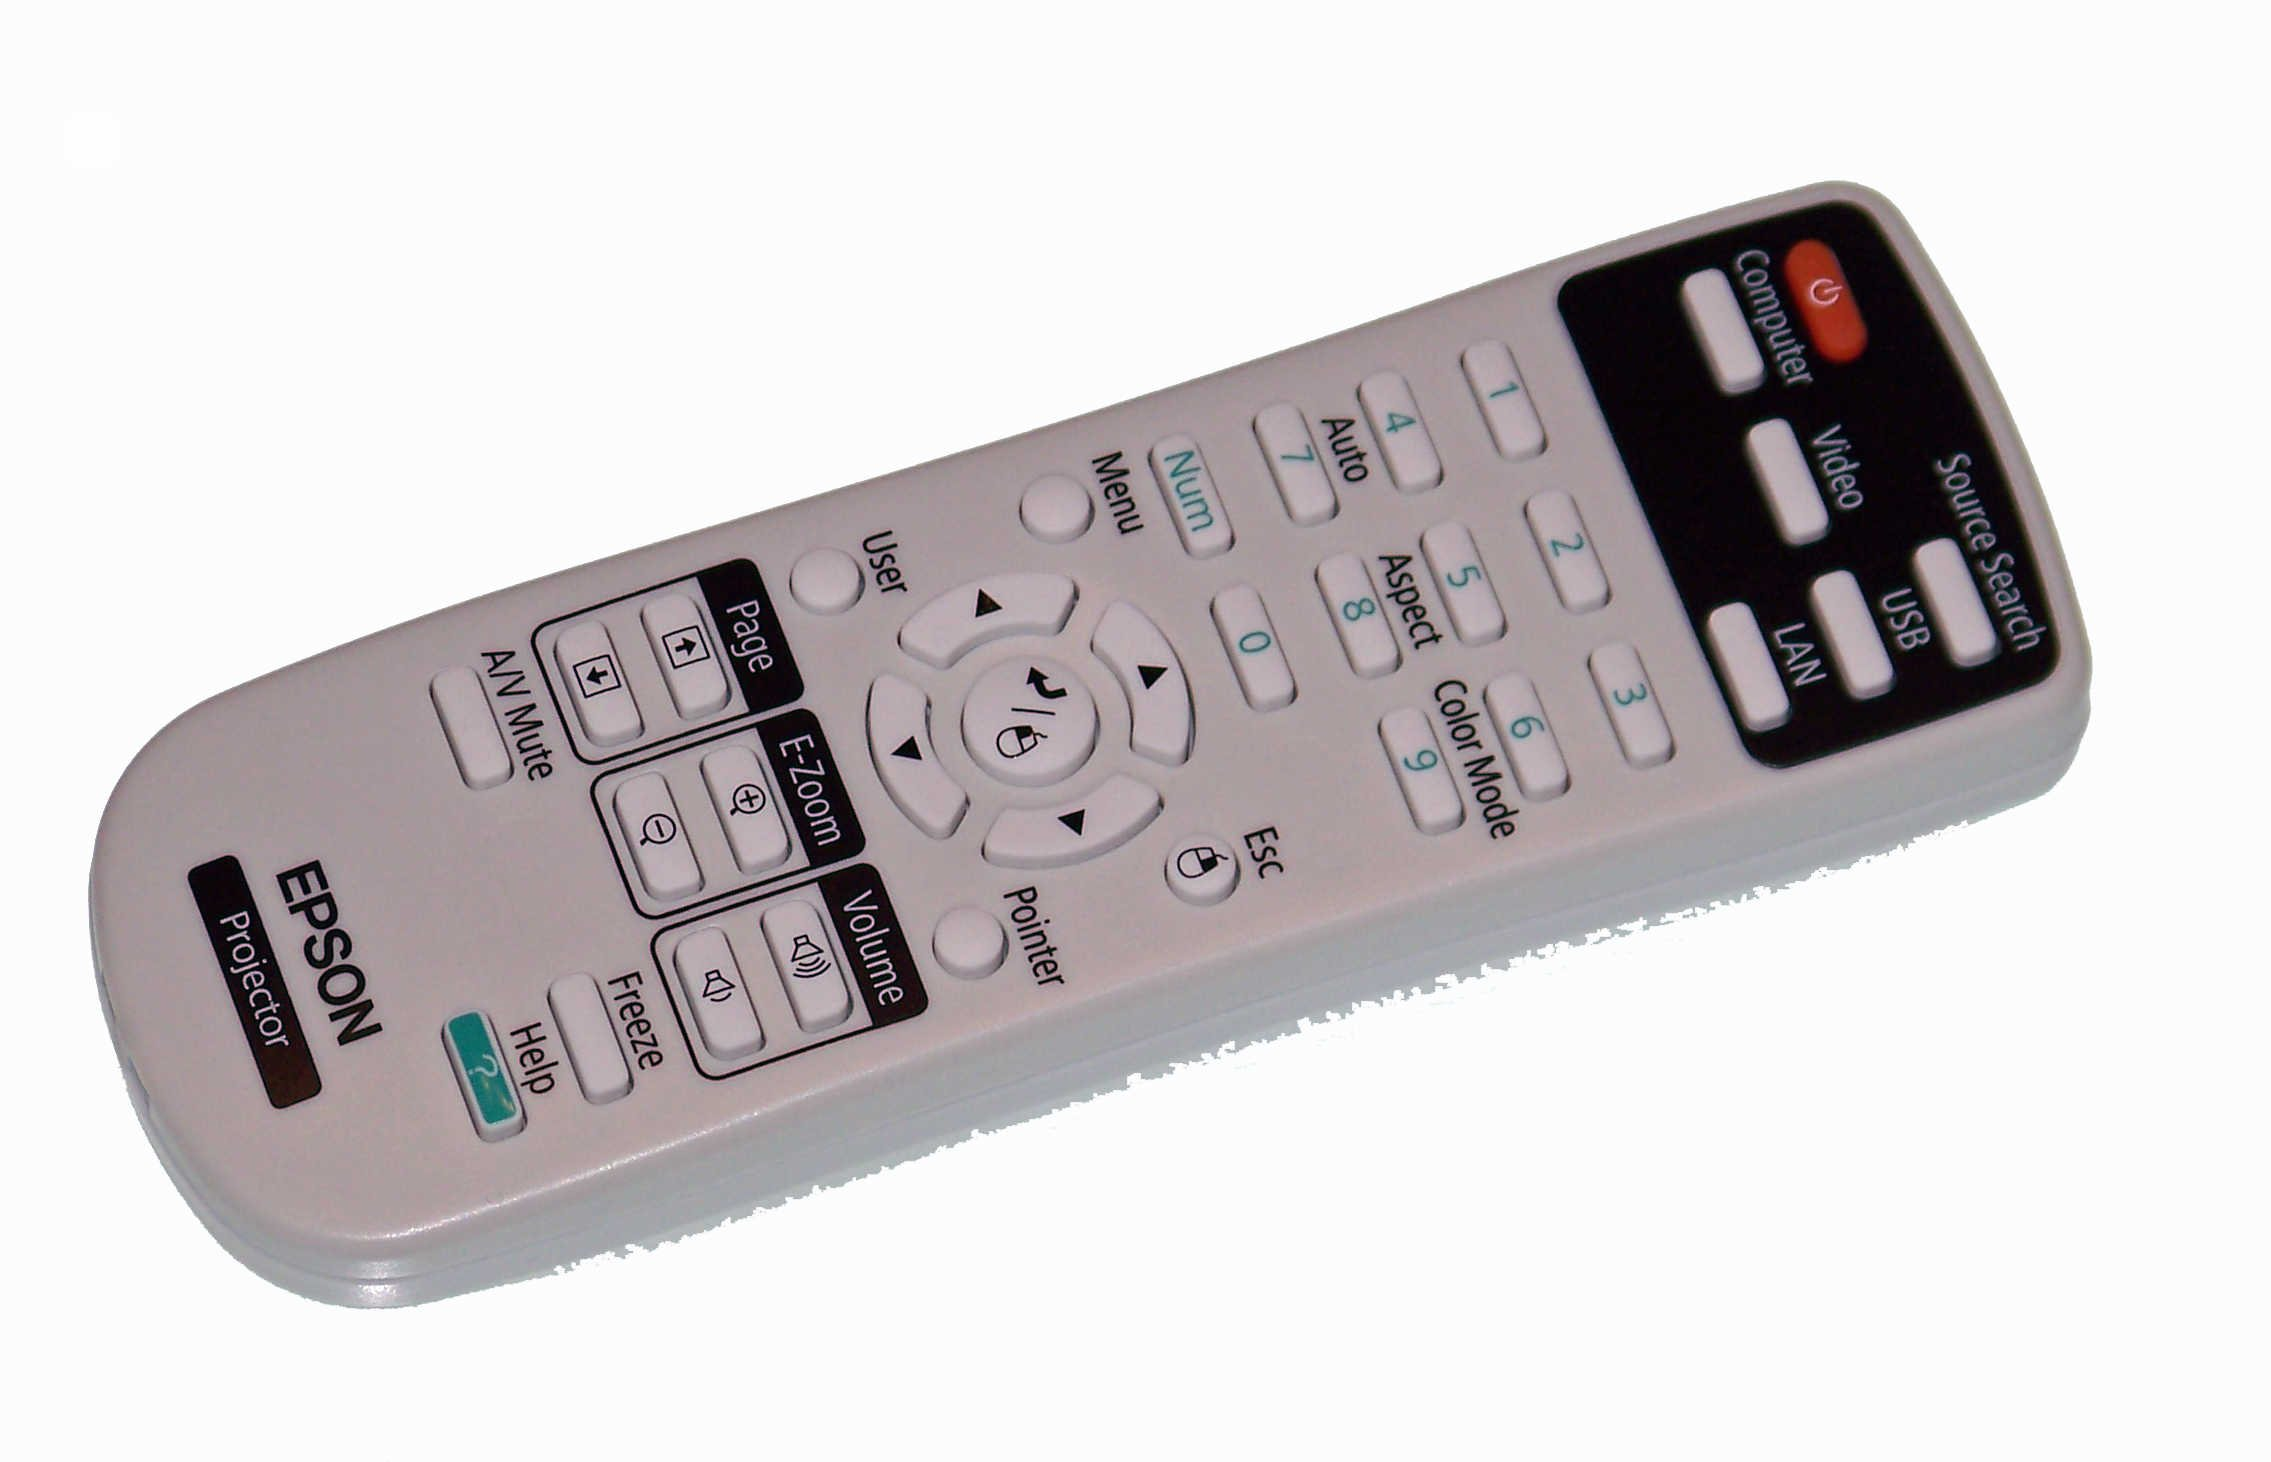 OEM Epson Remote Control: PowerLite Home Cinema 500, VS220, VS320 by Epson